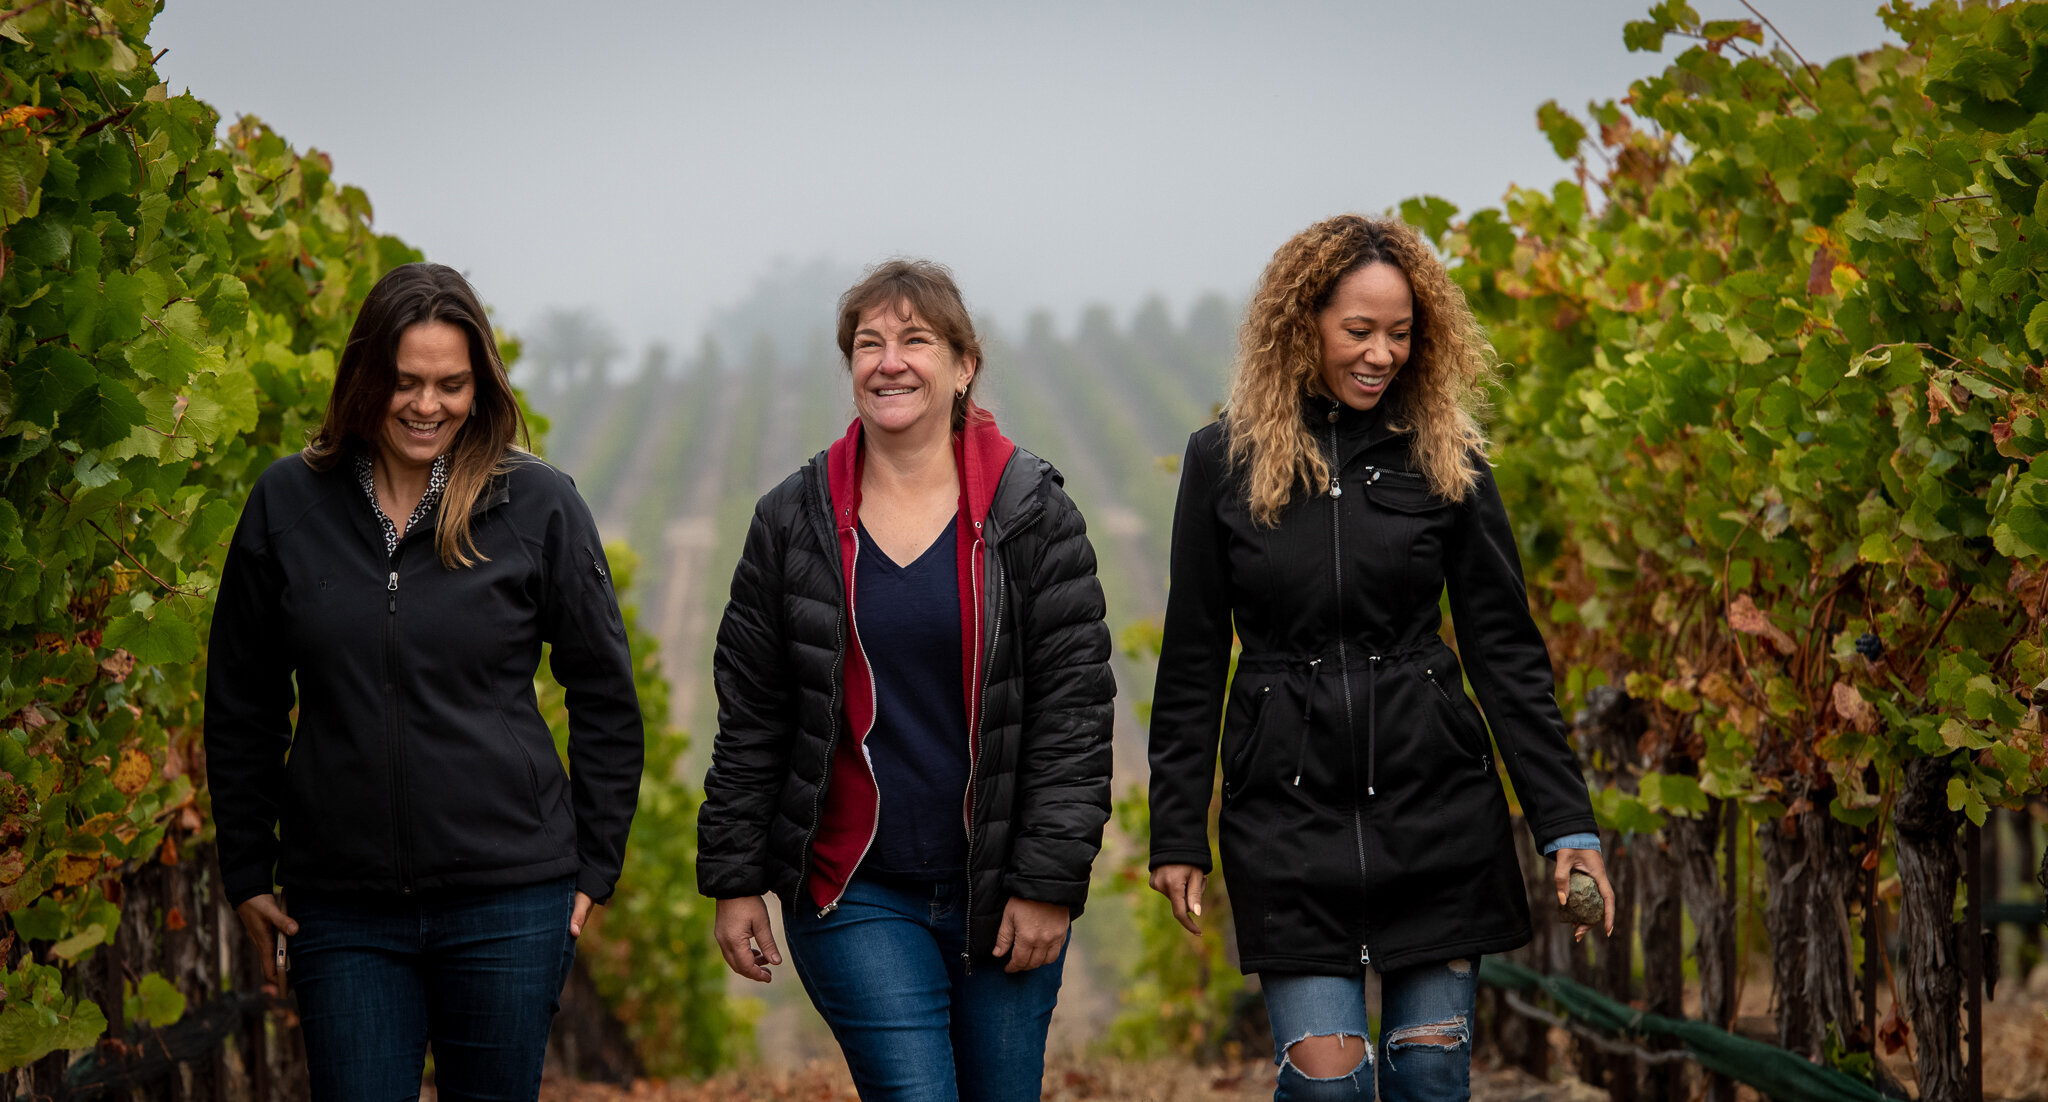 McBride Sisters in Vineyard with Winemaker